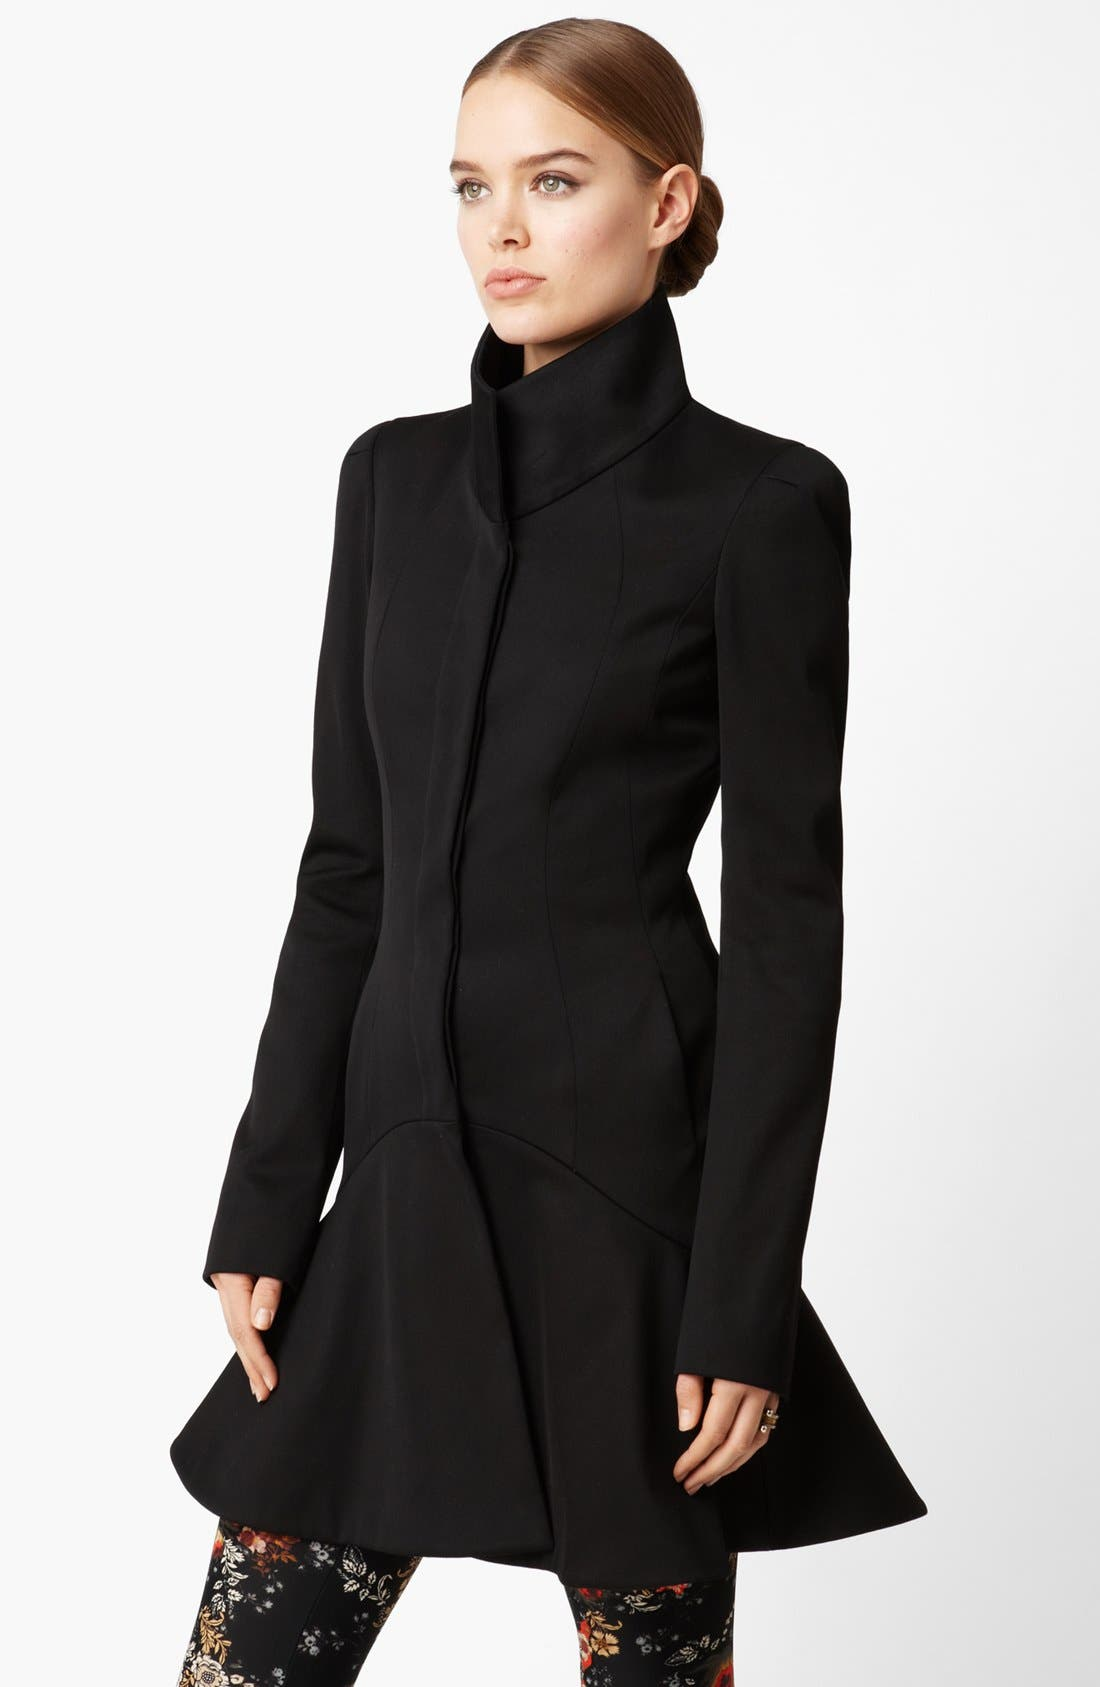 Main Image - Alexander McQueen Funnel Neck Stretch Cotton Coat